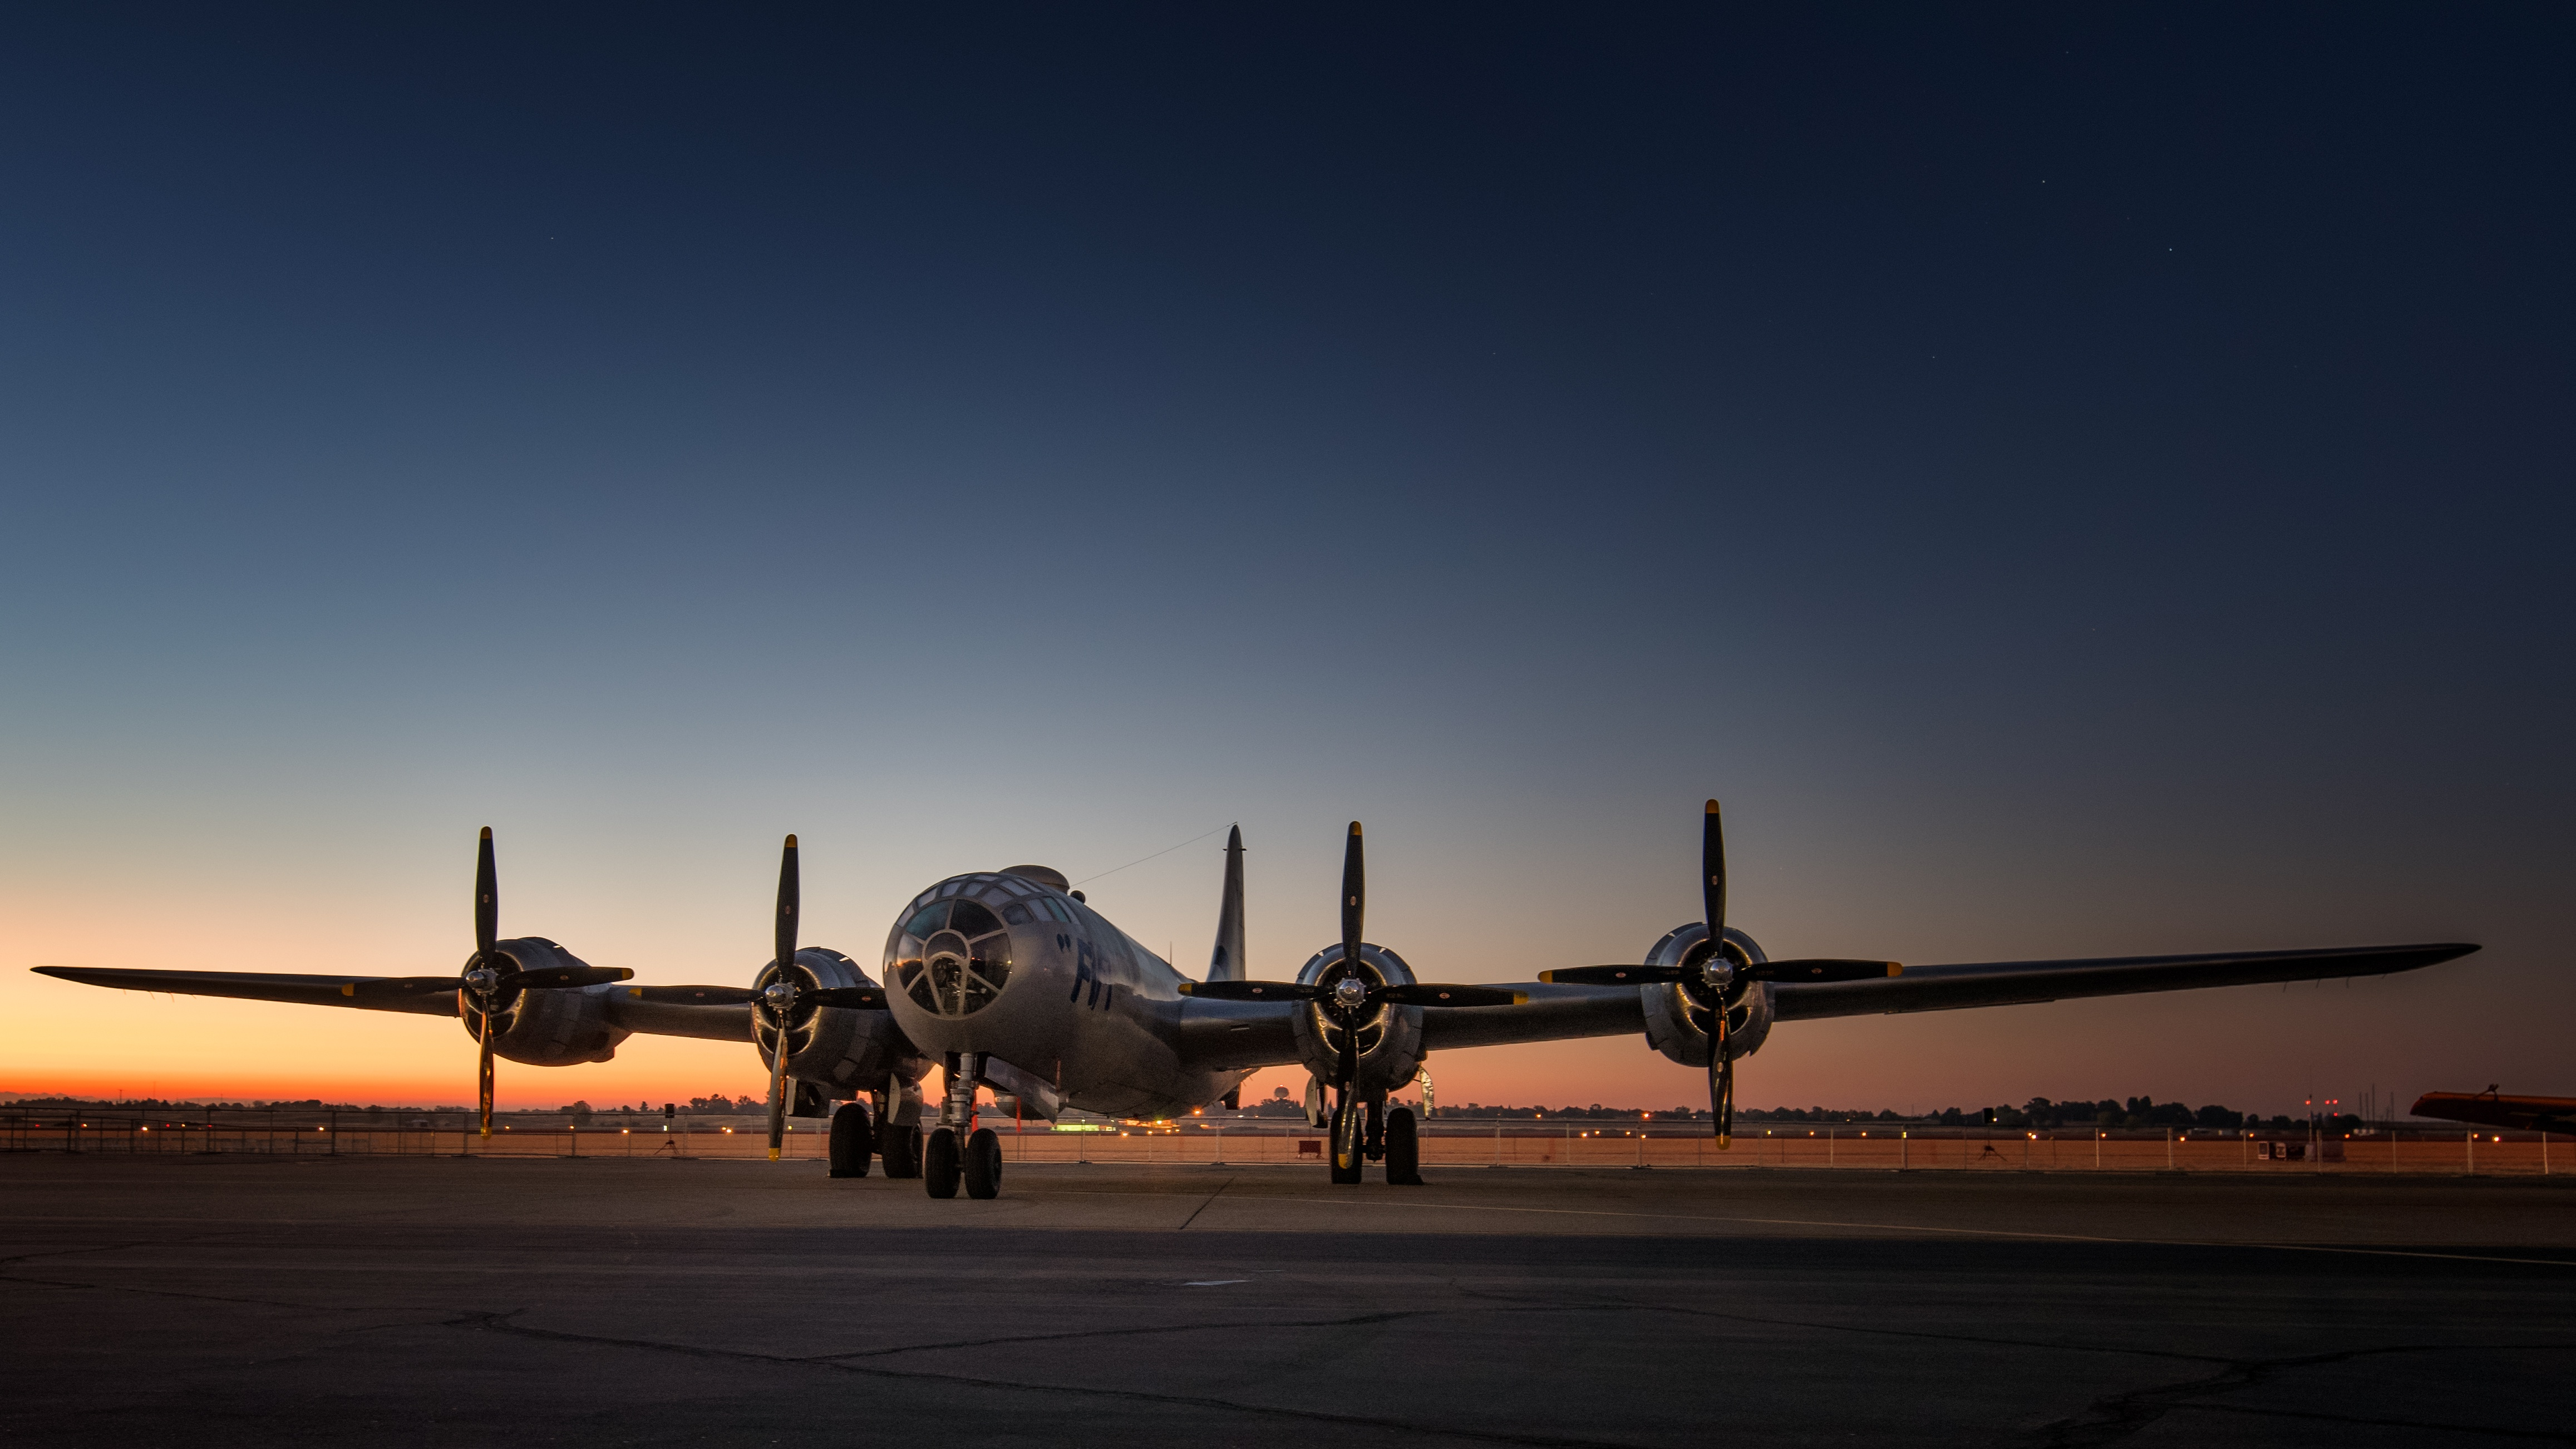 Airplane Wallpaper Iphone X Boeing B 29 Superfortress 4k Ultra Hd Wallpaper And